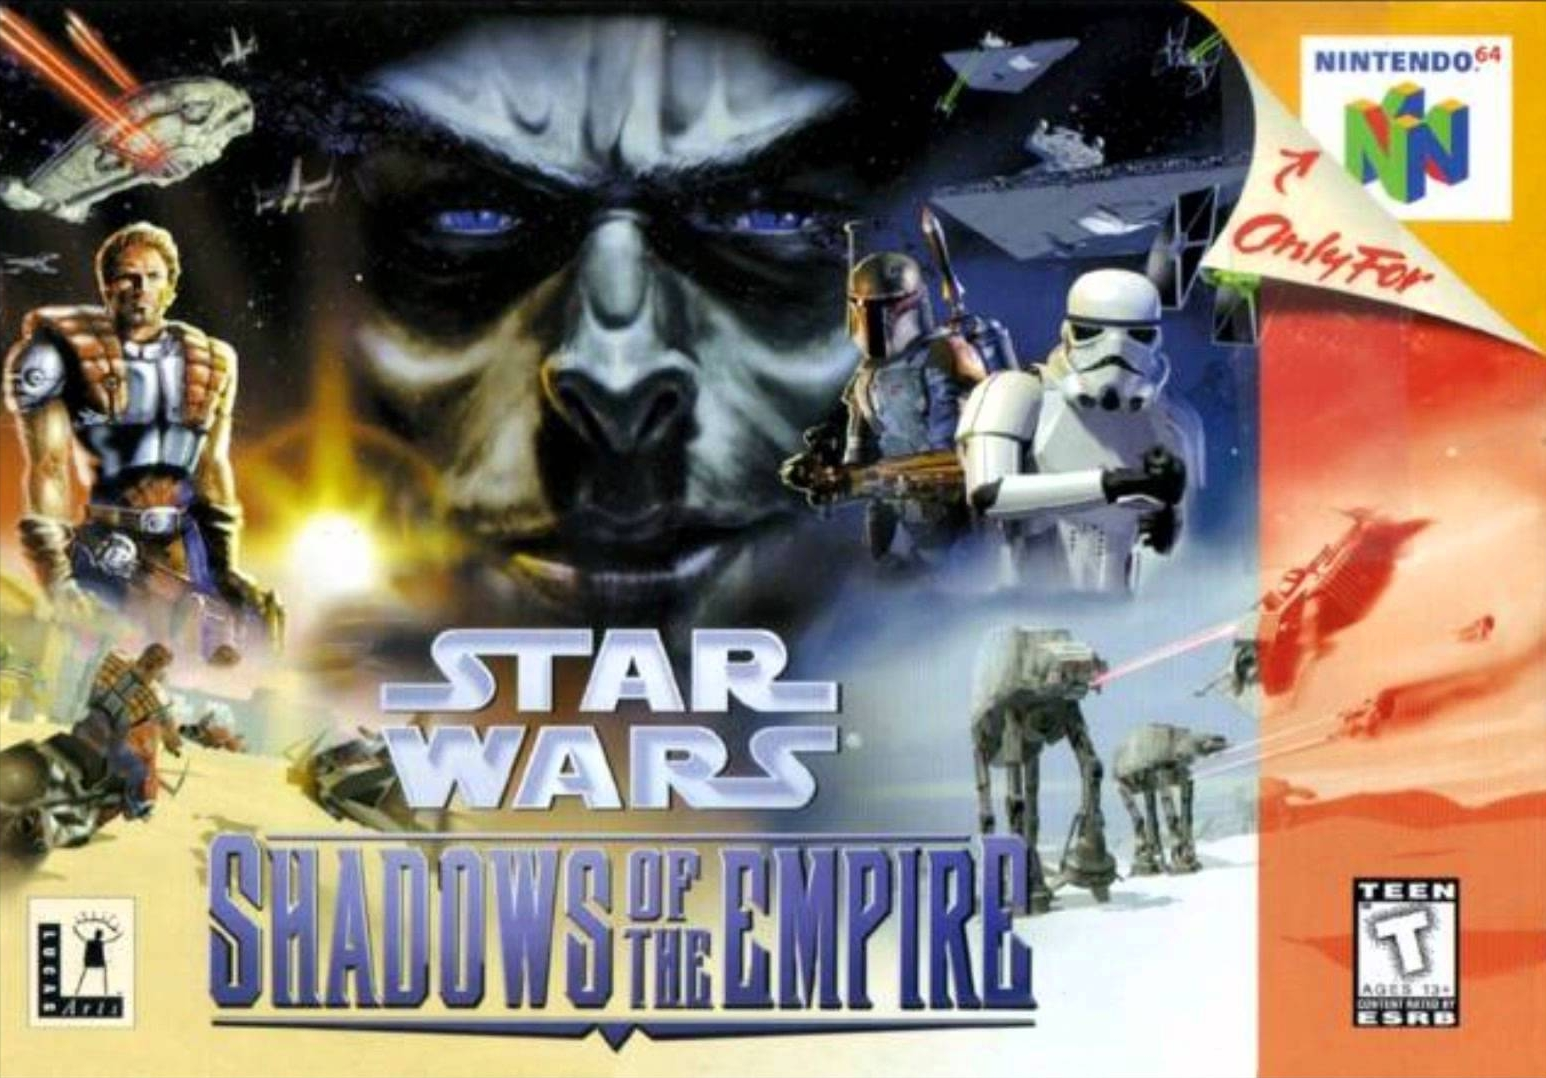 cover for star wars: shadows of the empire on nintendo 64